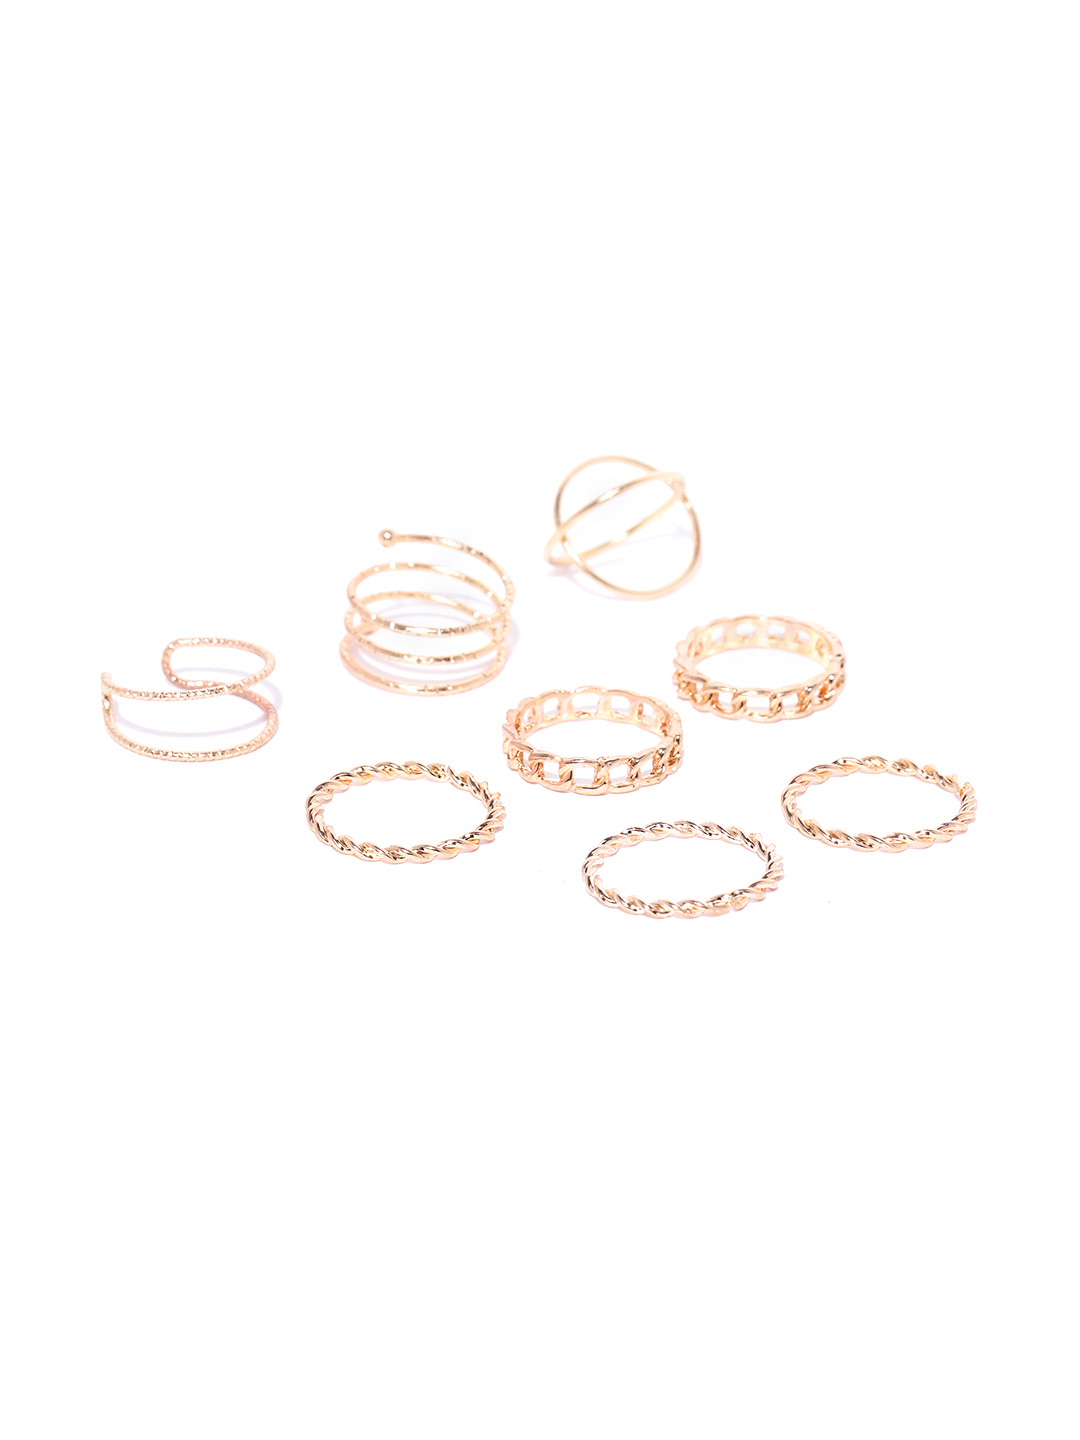 Jewels Galaxy Women Set of 8 Rose Gold-Plated Finger Rings Price in India